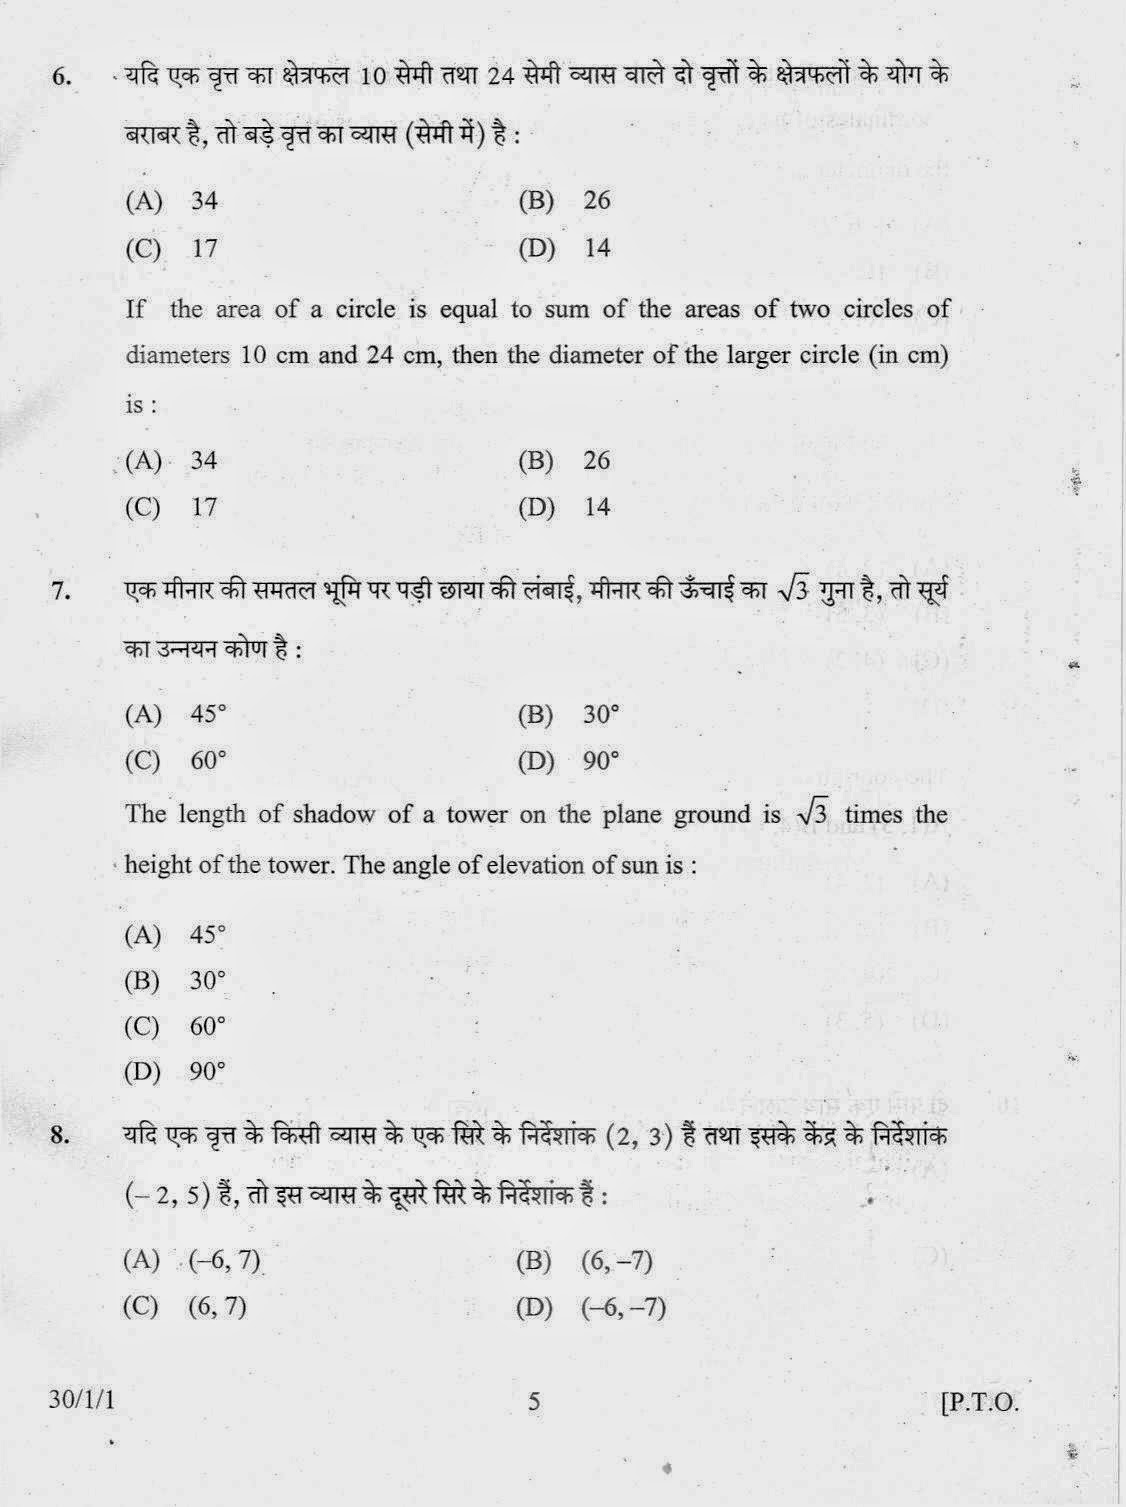 statistic question paper 2 answer all questions answer each question in the space provided for that question 1 each day, jamal completes a crossword puzzle from a particular newspaper and records his completion time, to the nearest minute.